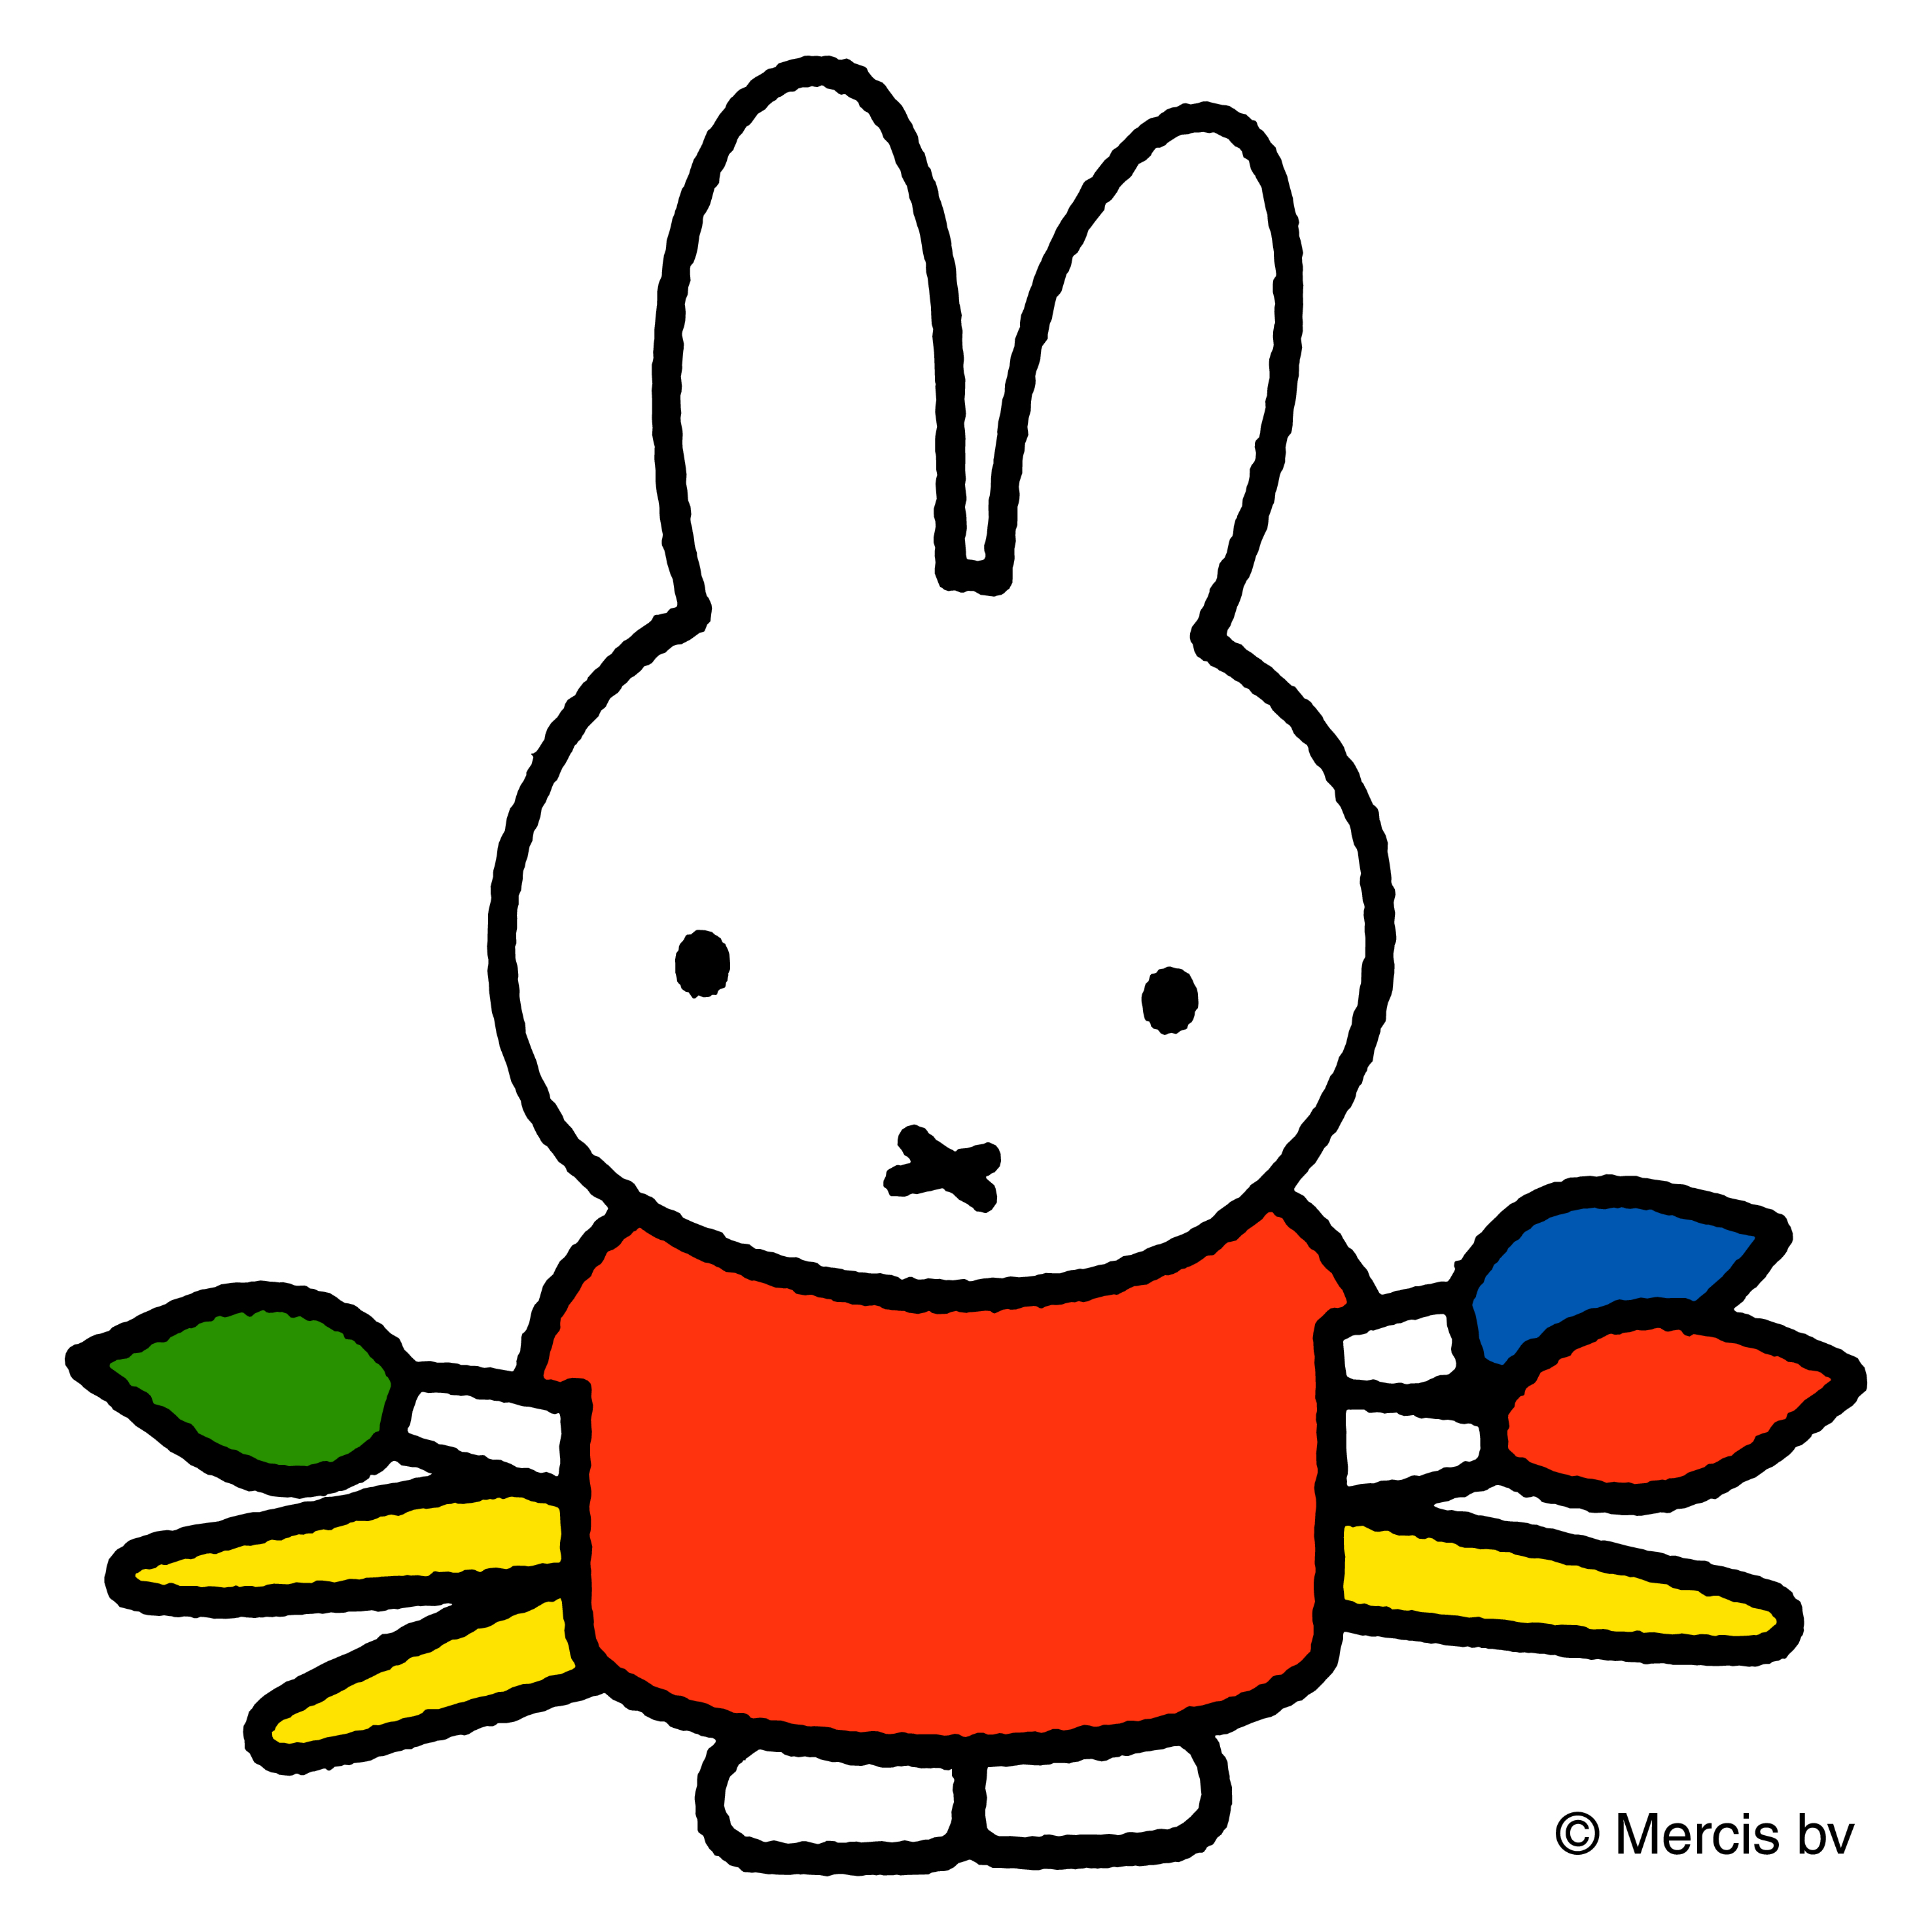 150768 dick%20bruna%20illustration%20from%20 miffy%20at%20the%20gallery %201997 0382b0 original 1417711673